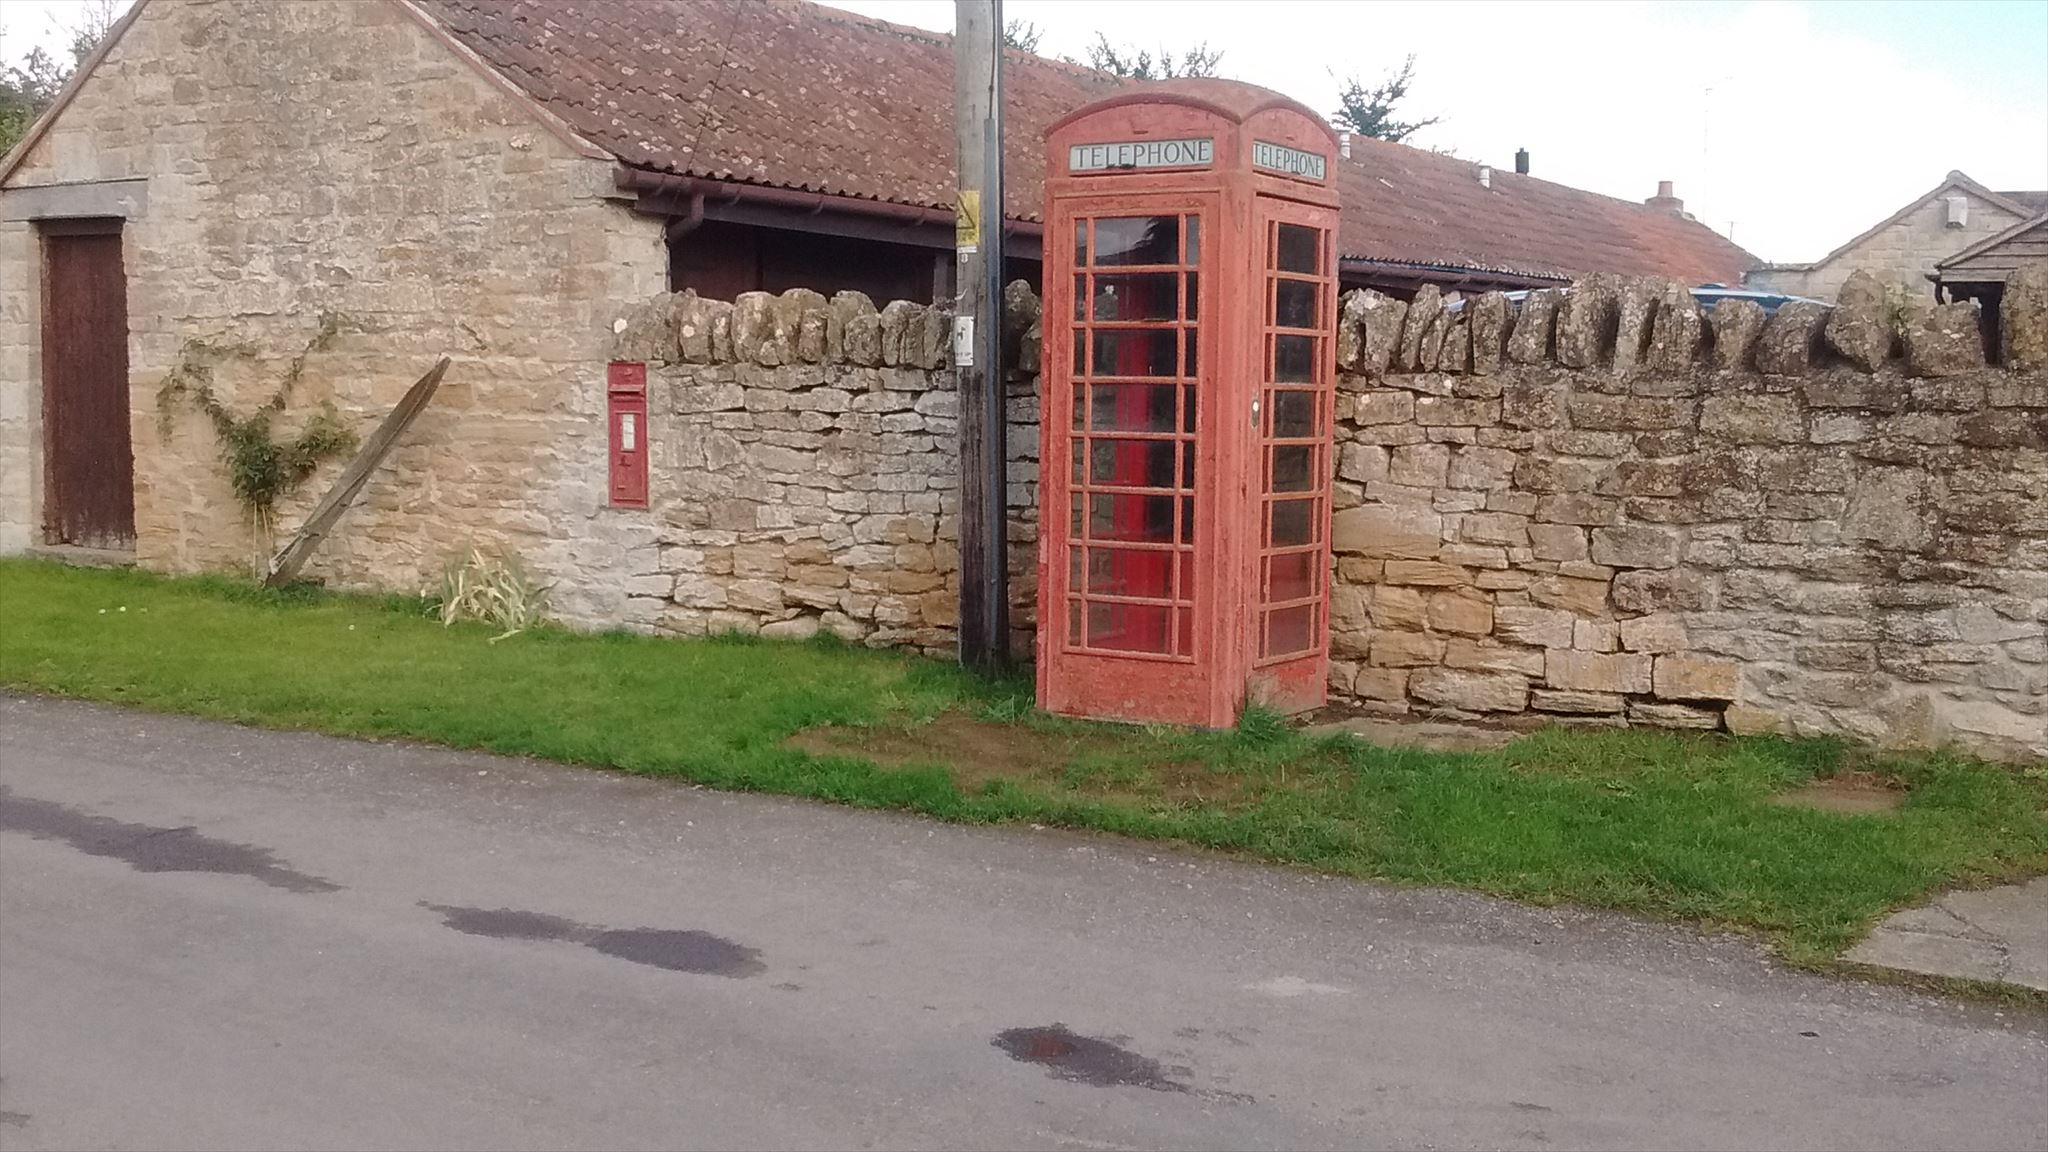 A picture of the phone box and post box